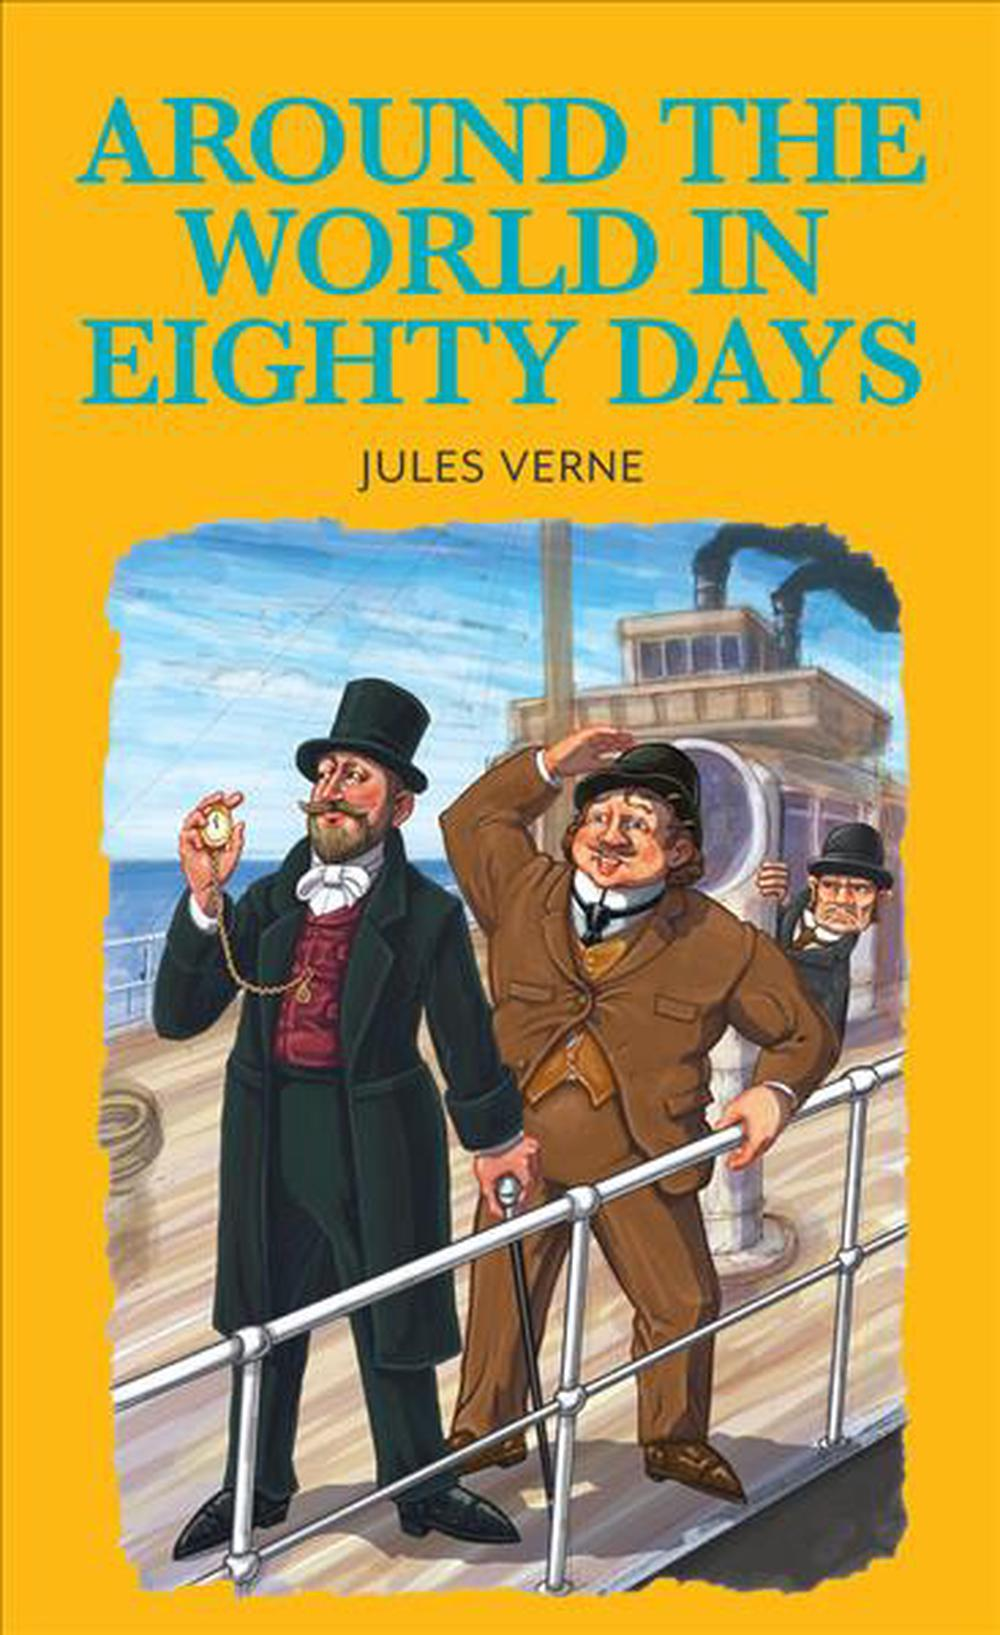 a journey to freakish places in around the world in eighty days by jules verne Detail: around the world in eighty days won jules verne worldwide renown, and was a fantastic success for the times, selling 108,000 copies, with translations into english, russian, italian, and spanish as soon as it was published.